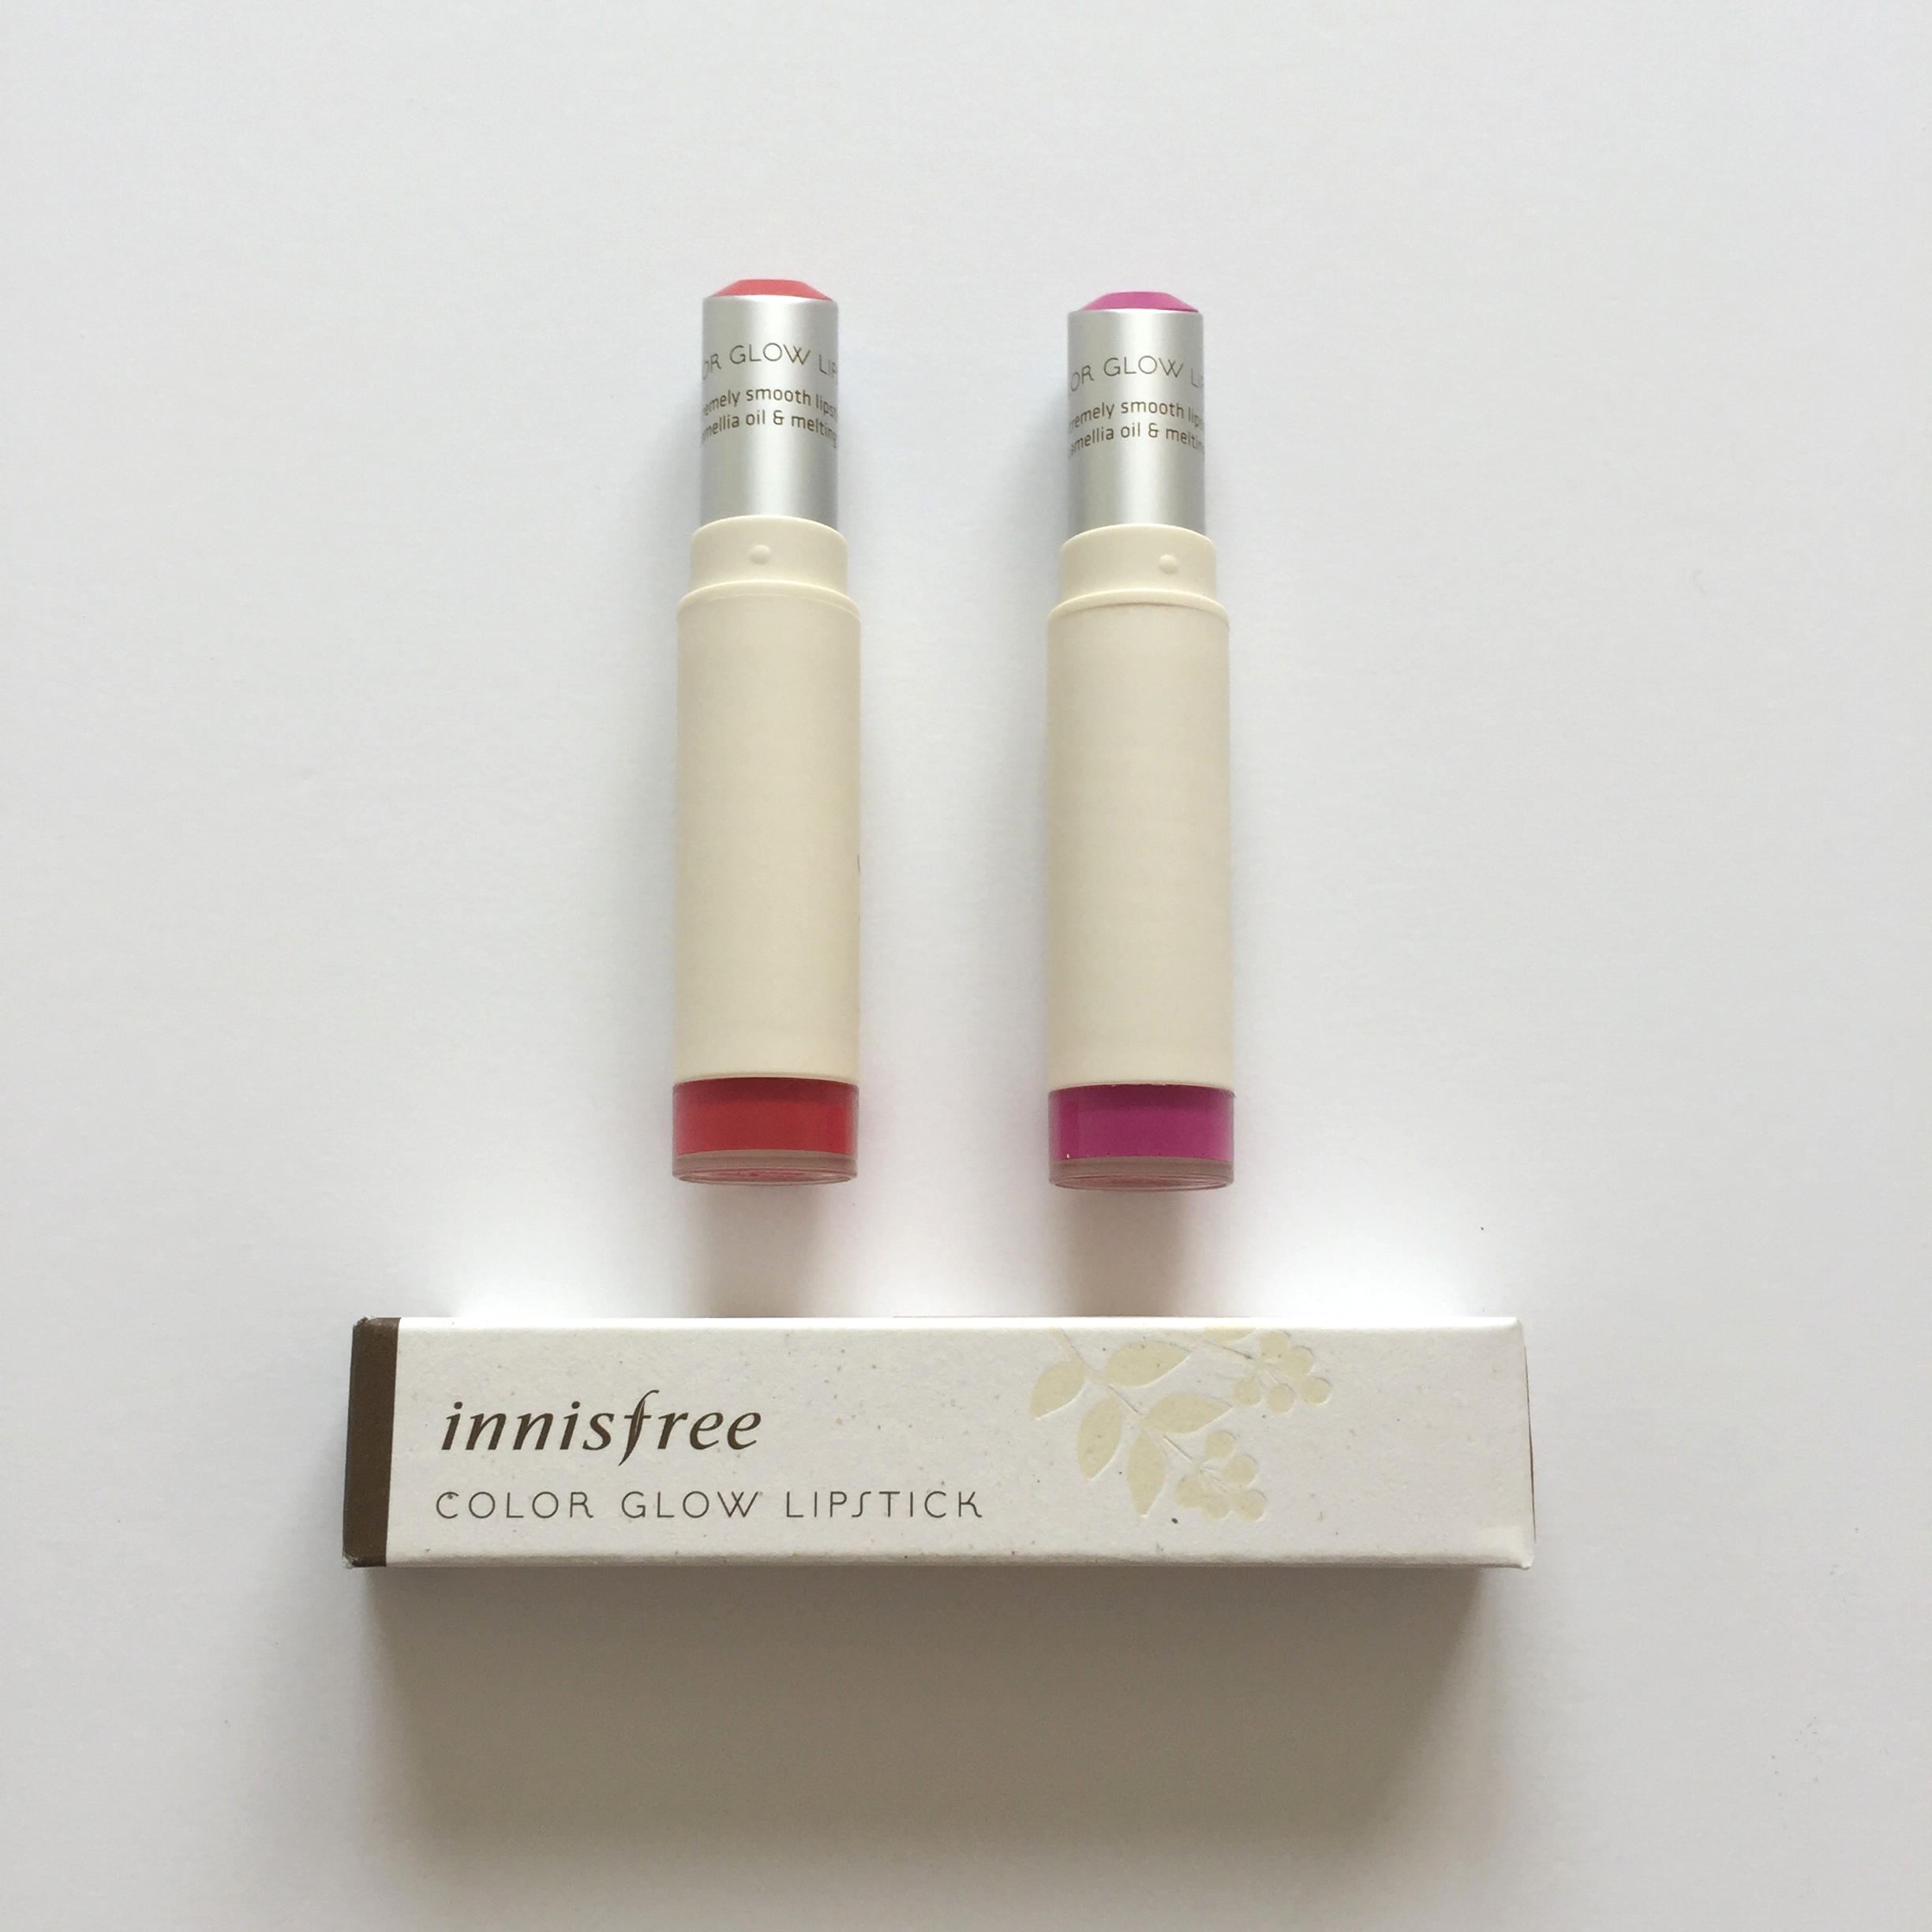 Innisfree Color Glow Lipstick Review